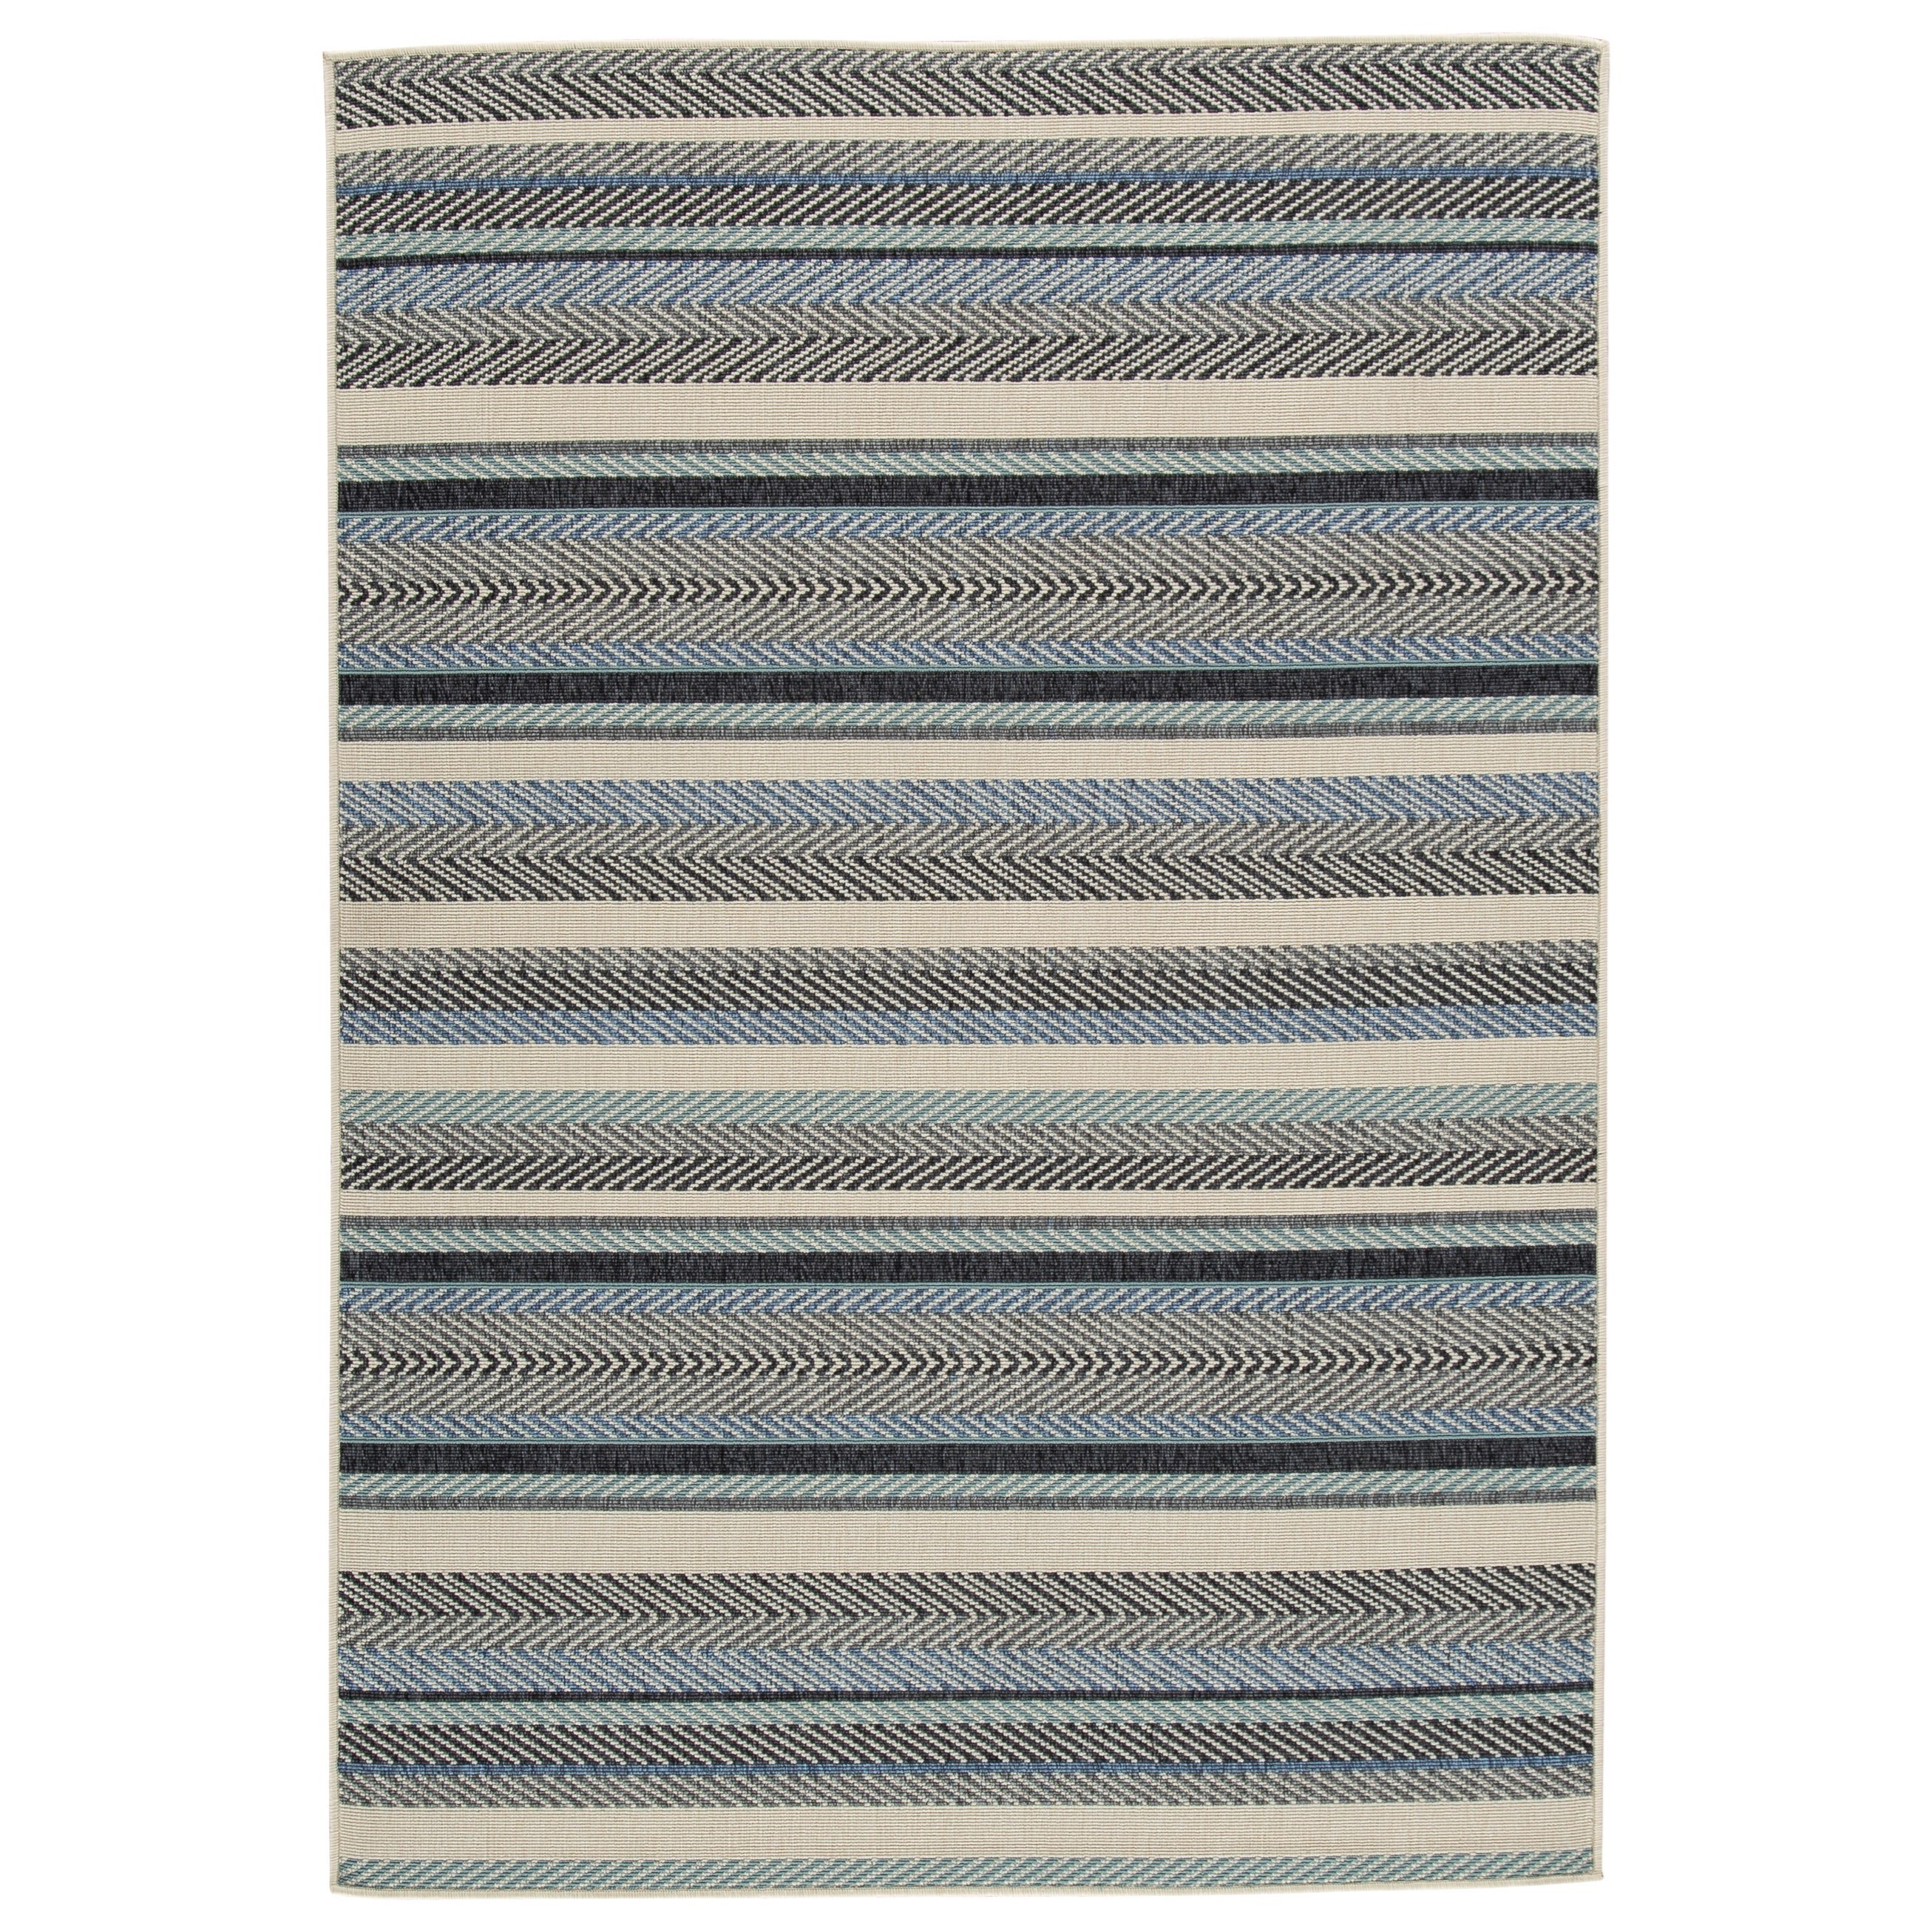 Casual Area Rugs Troost Blue/Cream Medium Rug by Signature at Walker's Furniture